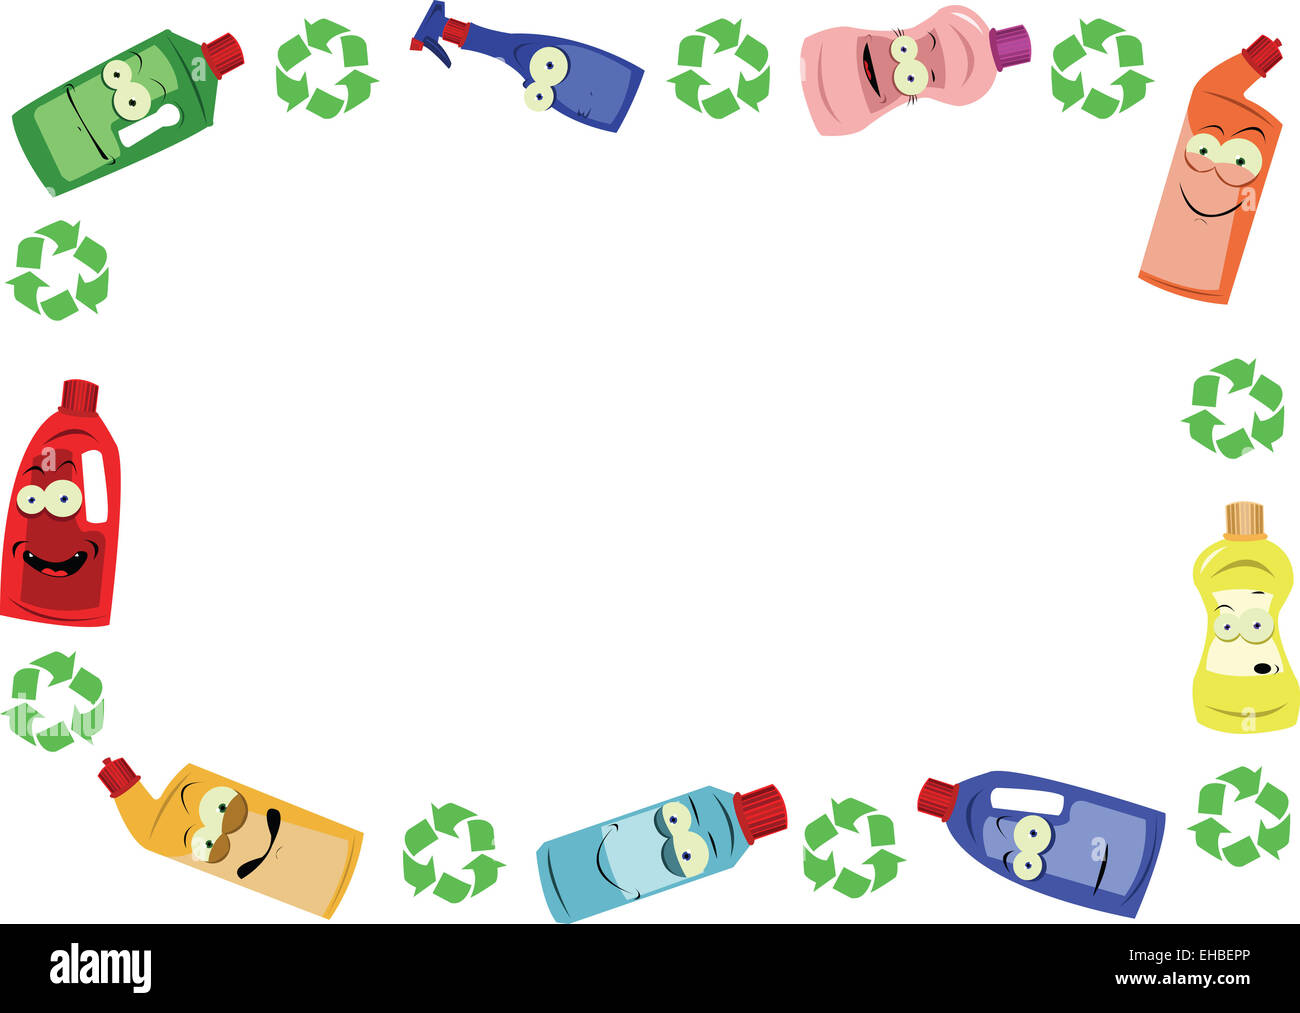 Funny Recycling Frame Stock Photo Royalty Free Image